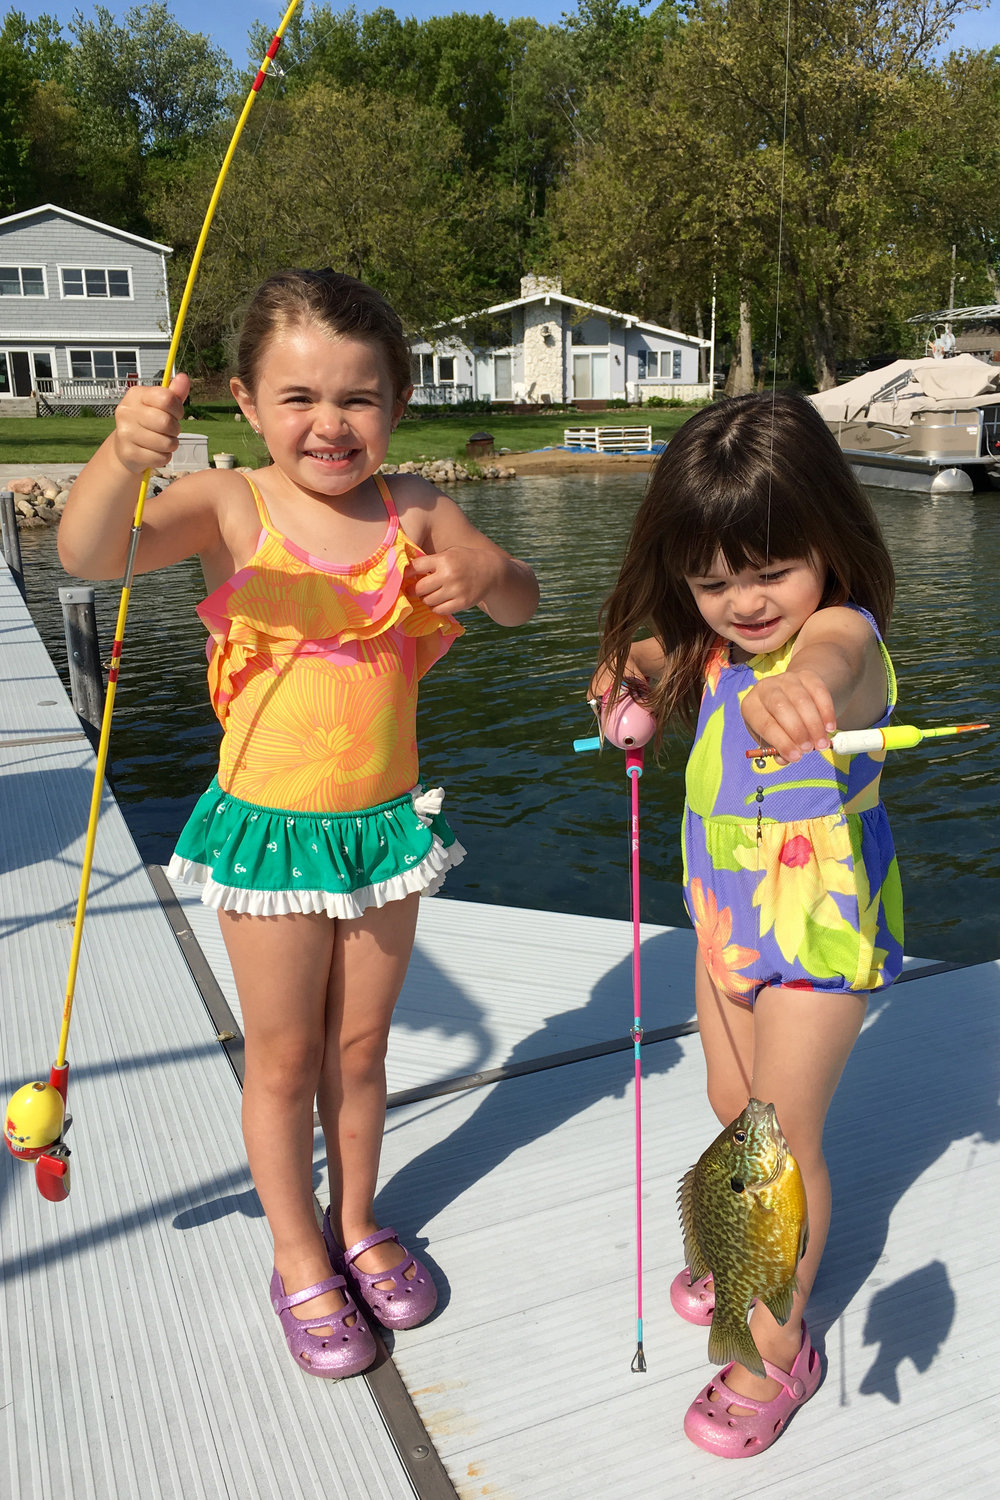 The stuff of memories: Winny Barnes (4 years) and Cami (2 years) holding pumpkinseed fish